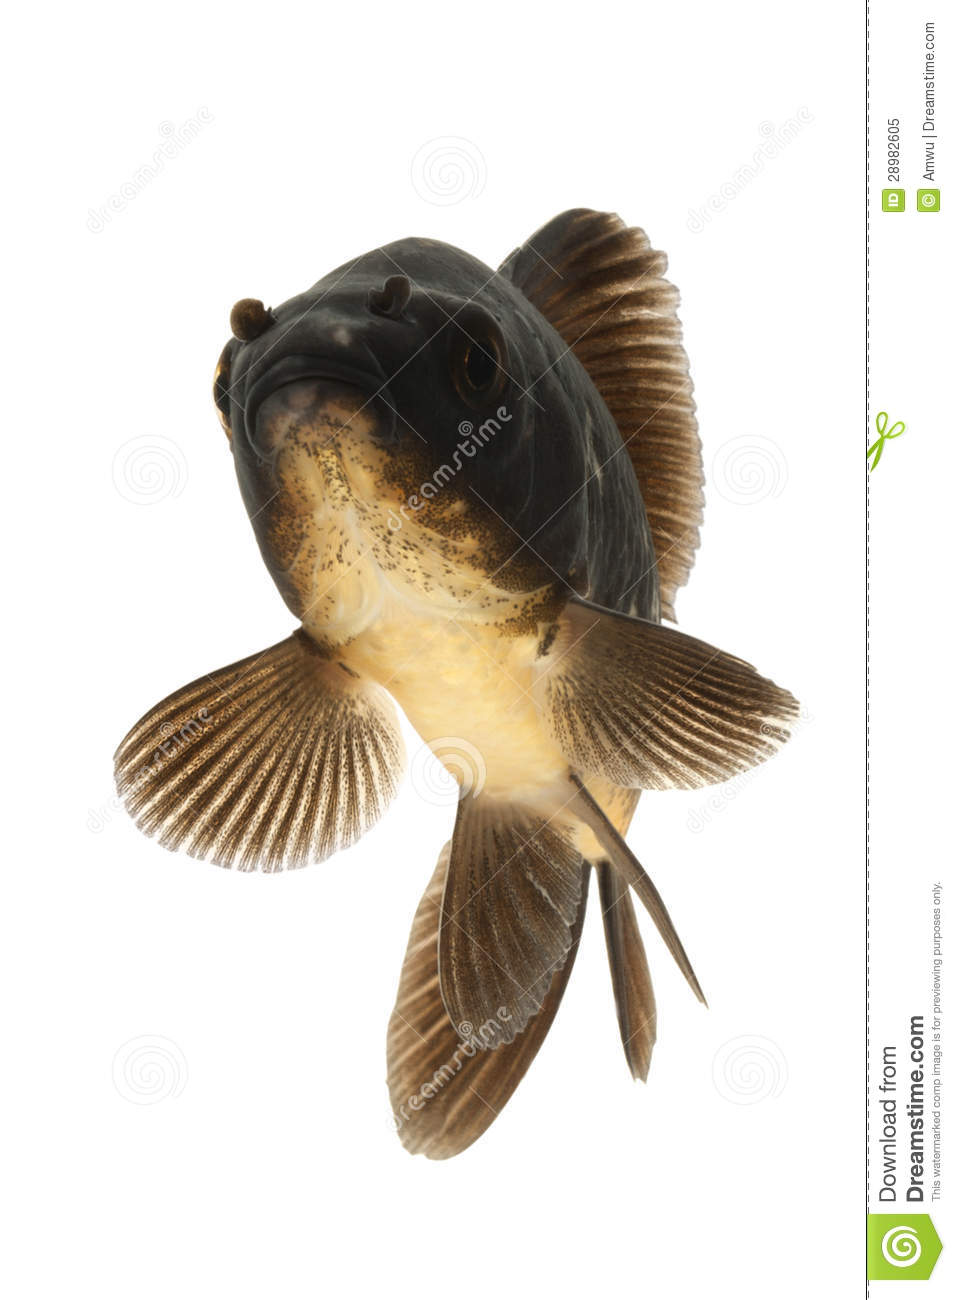 Black koi fish royalty free stock photo image 28982605 for All black koi fish